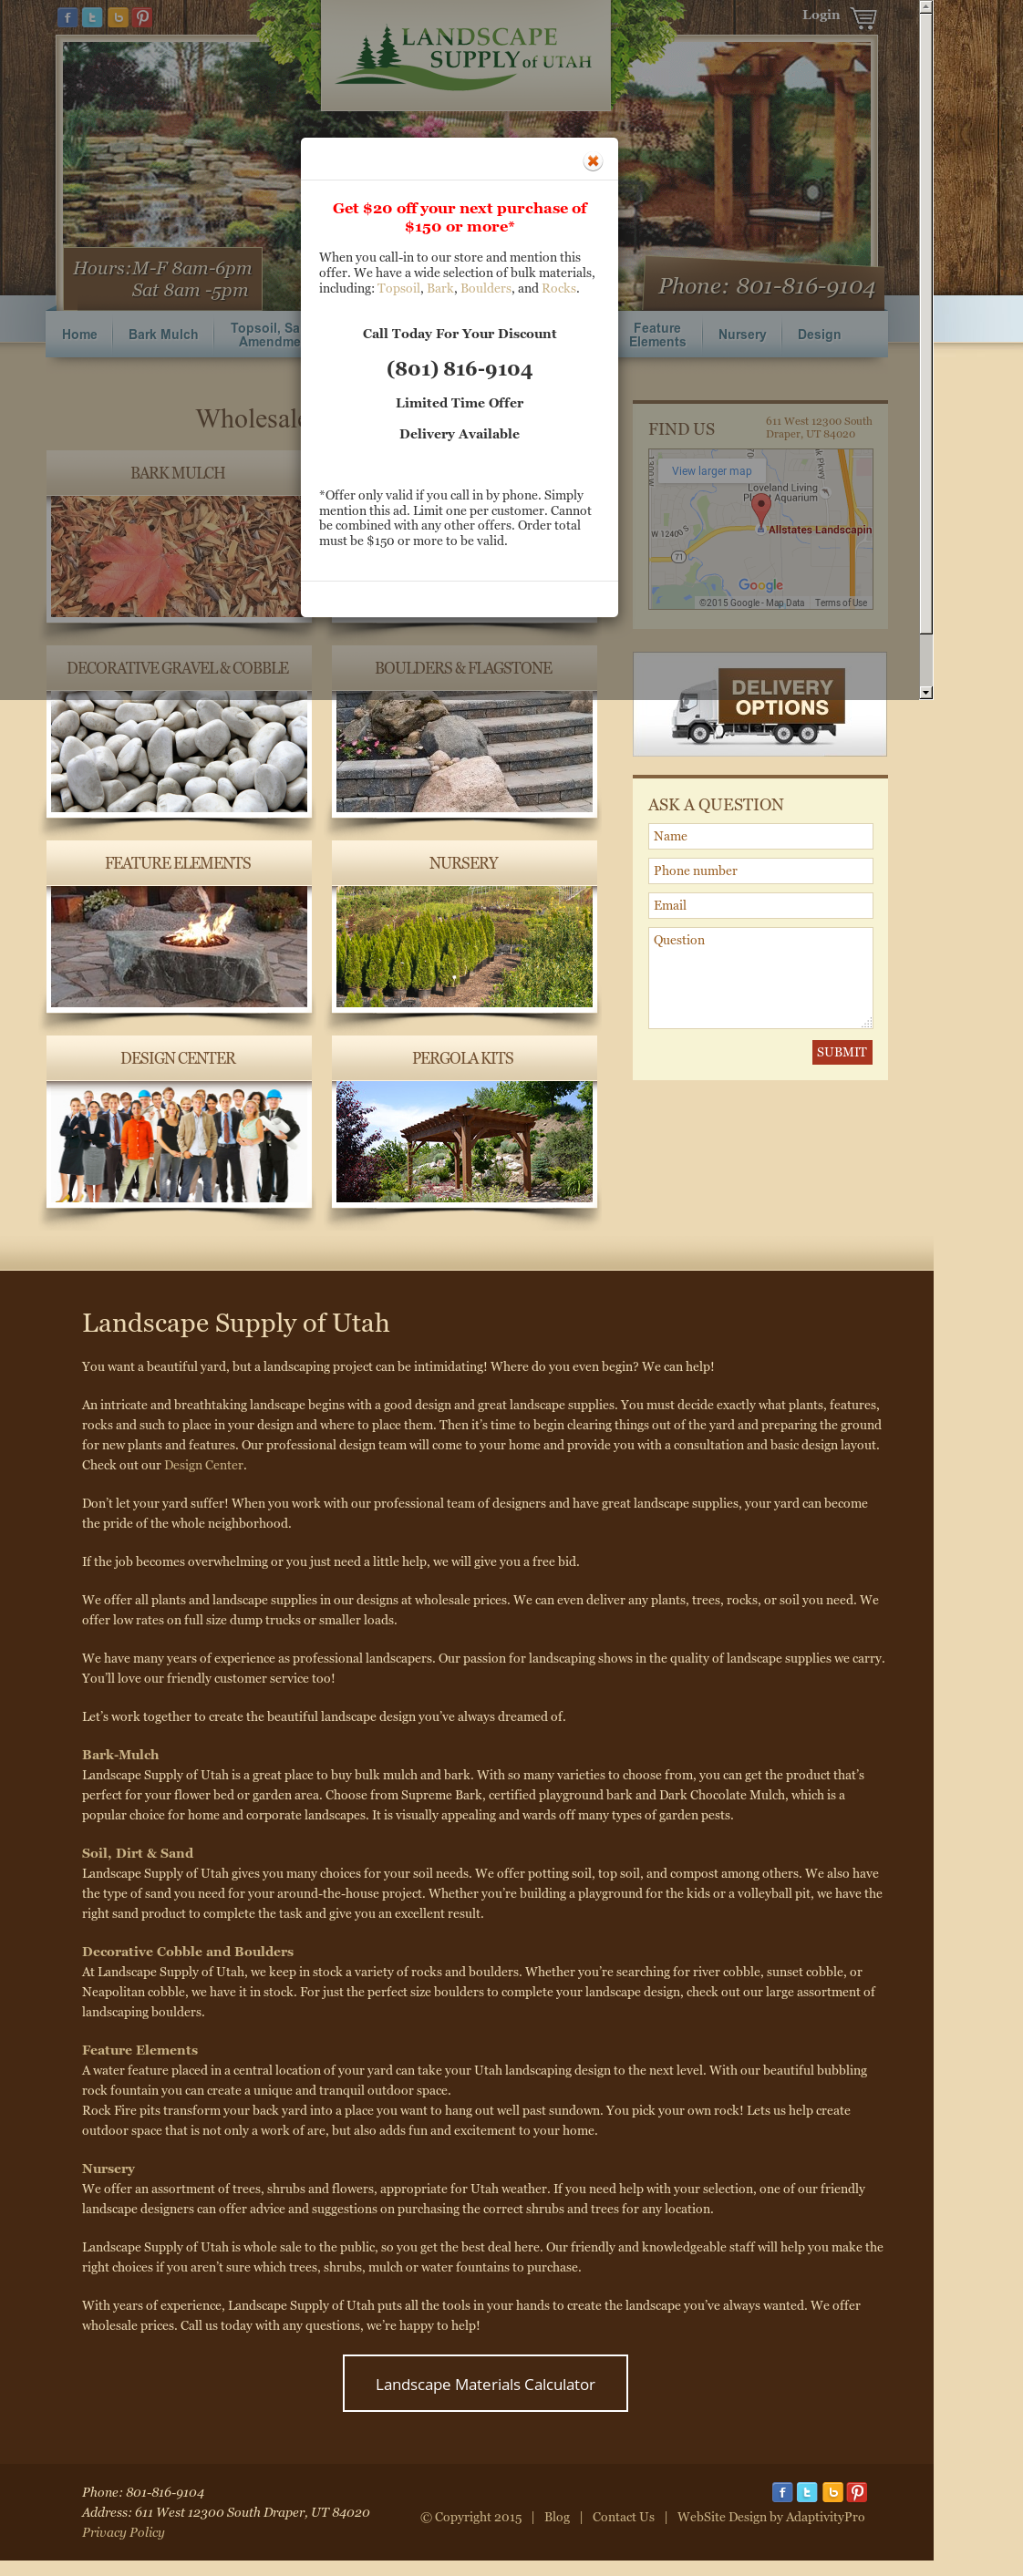 Landscape Supply of Utah Competitors, Revenue and Employees - Owler Company  Profile - Landscape Supply Of Utah Competitors, Revenue And Employees - Owler